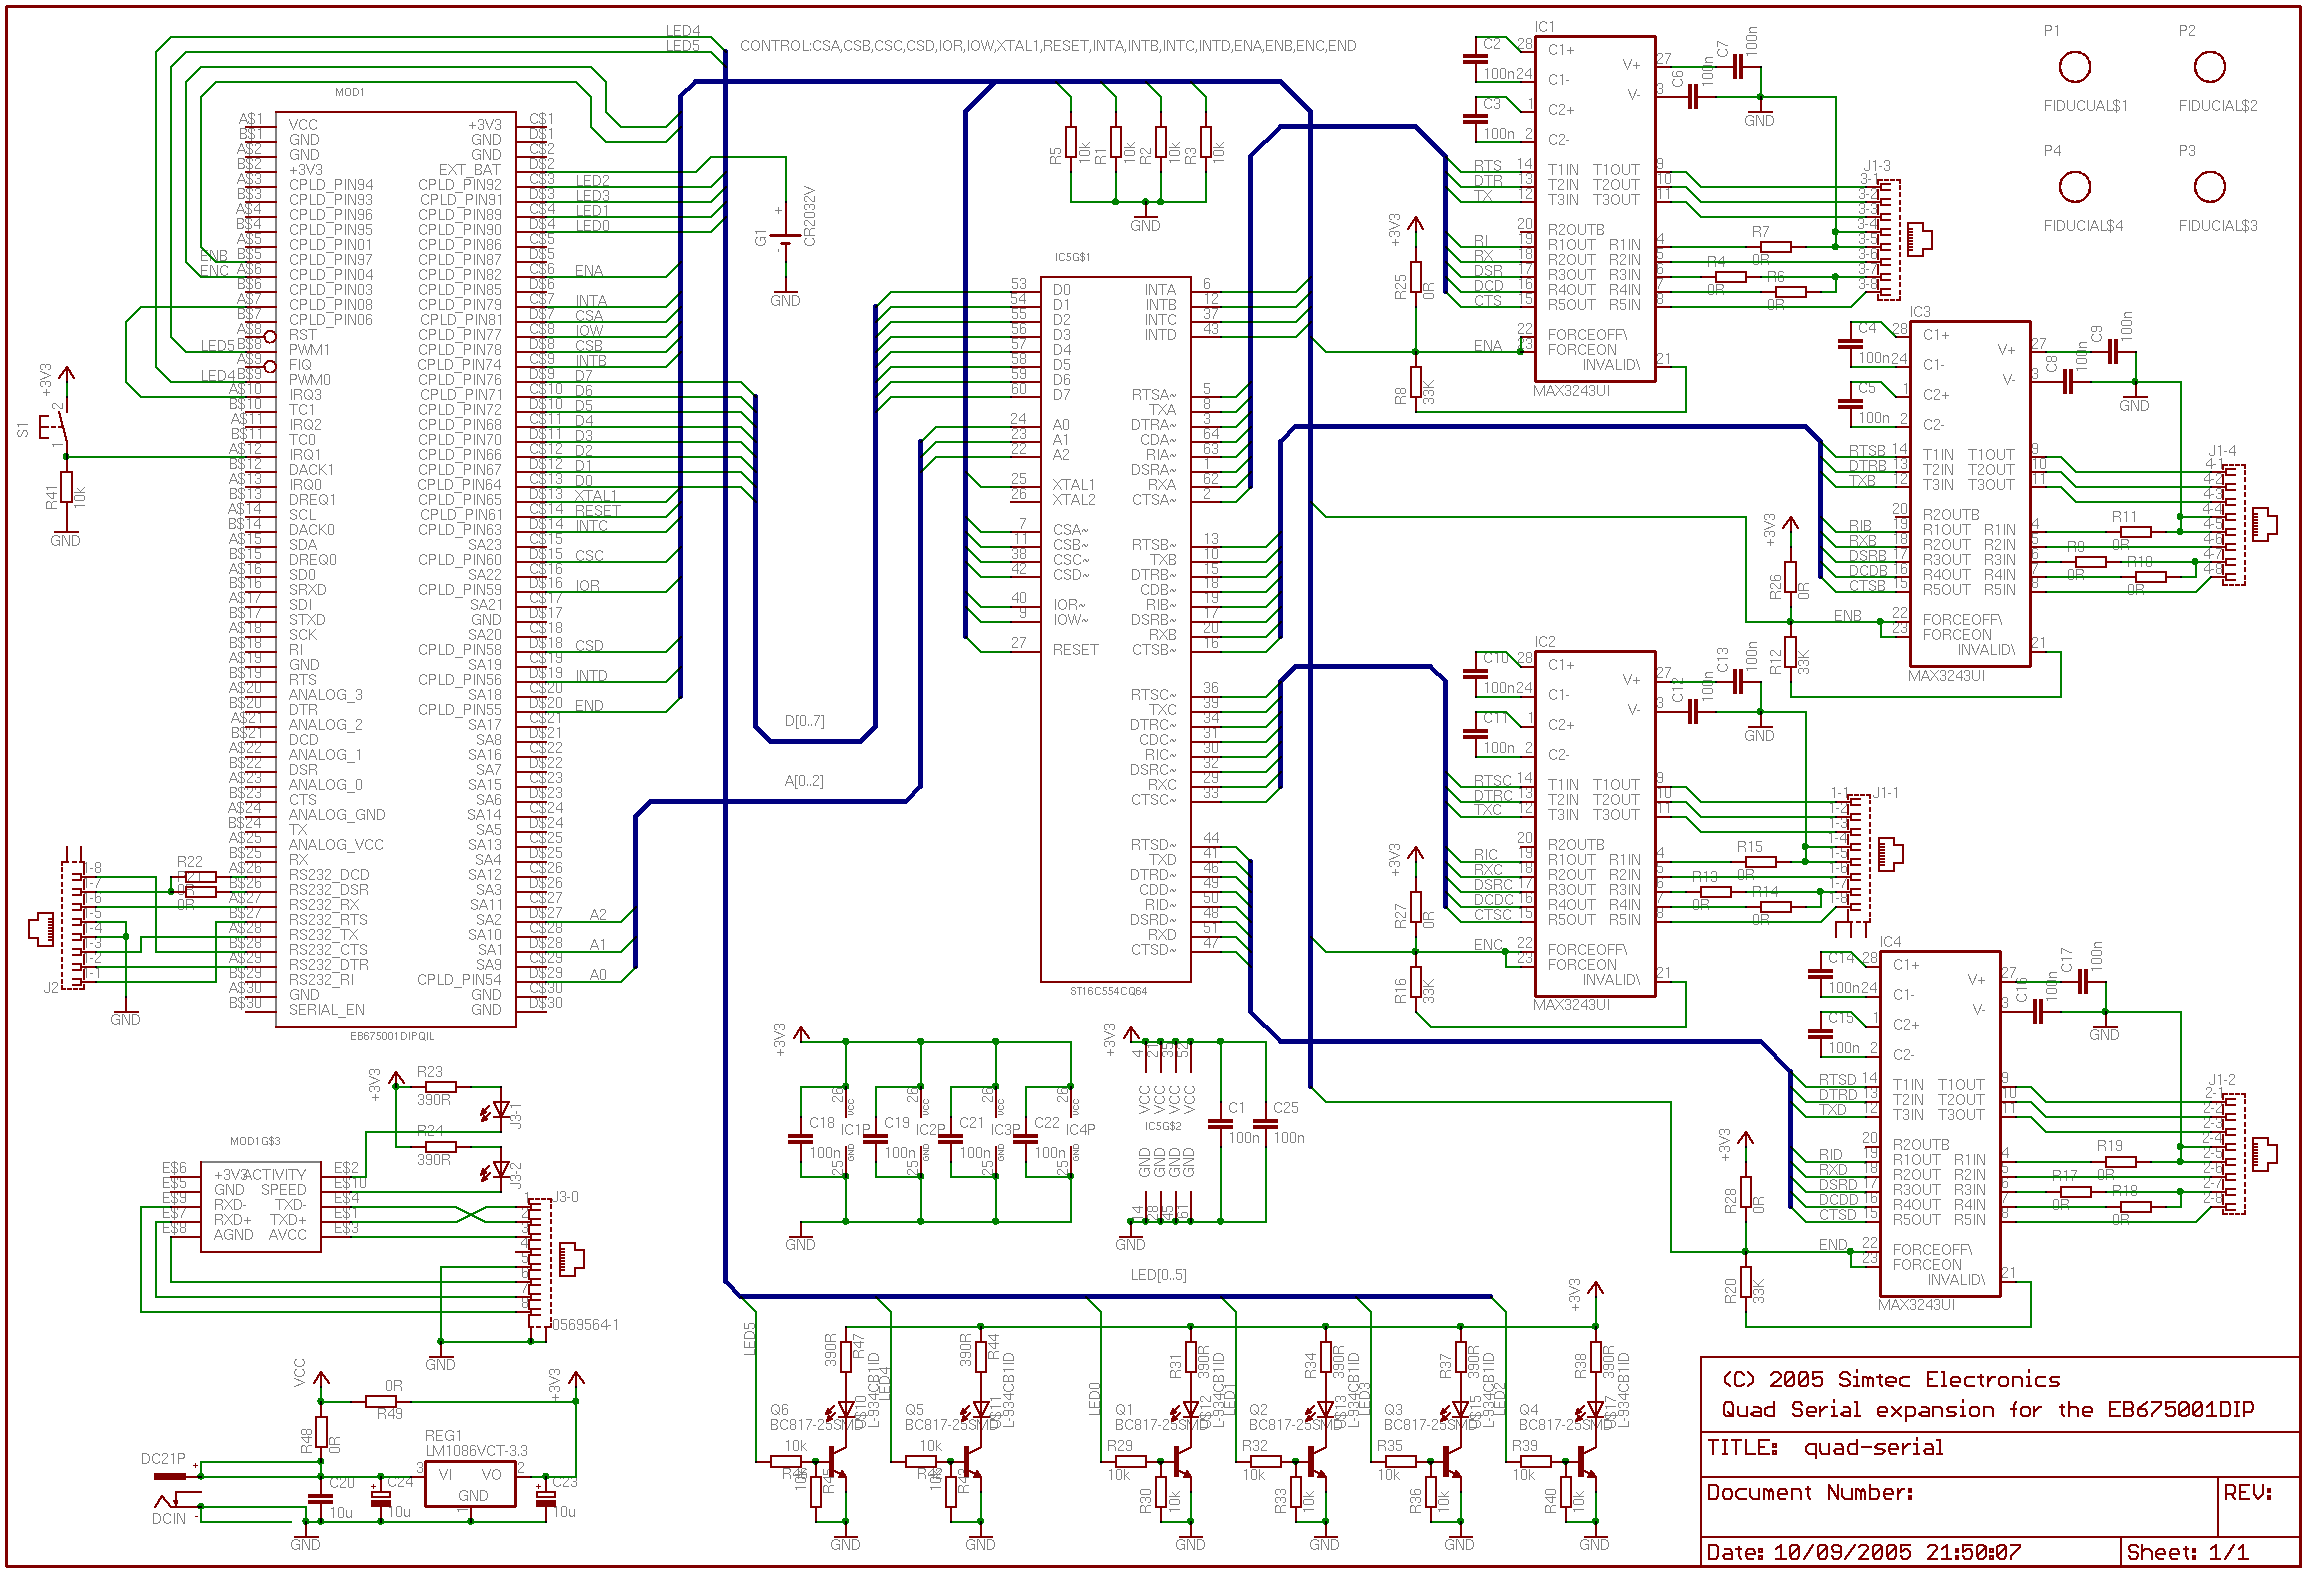 Eagle Bus Wiring Schematics Internal Diagrams Mci Schematic Simtec Electronics Support An0001 Four Port Serial Adapter For Yamaha Motorcycle